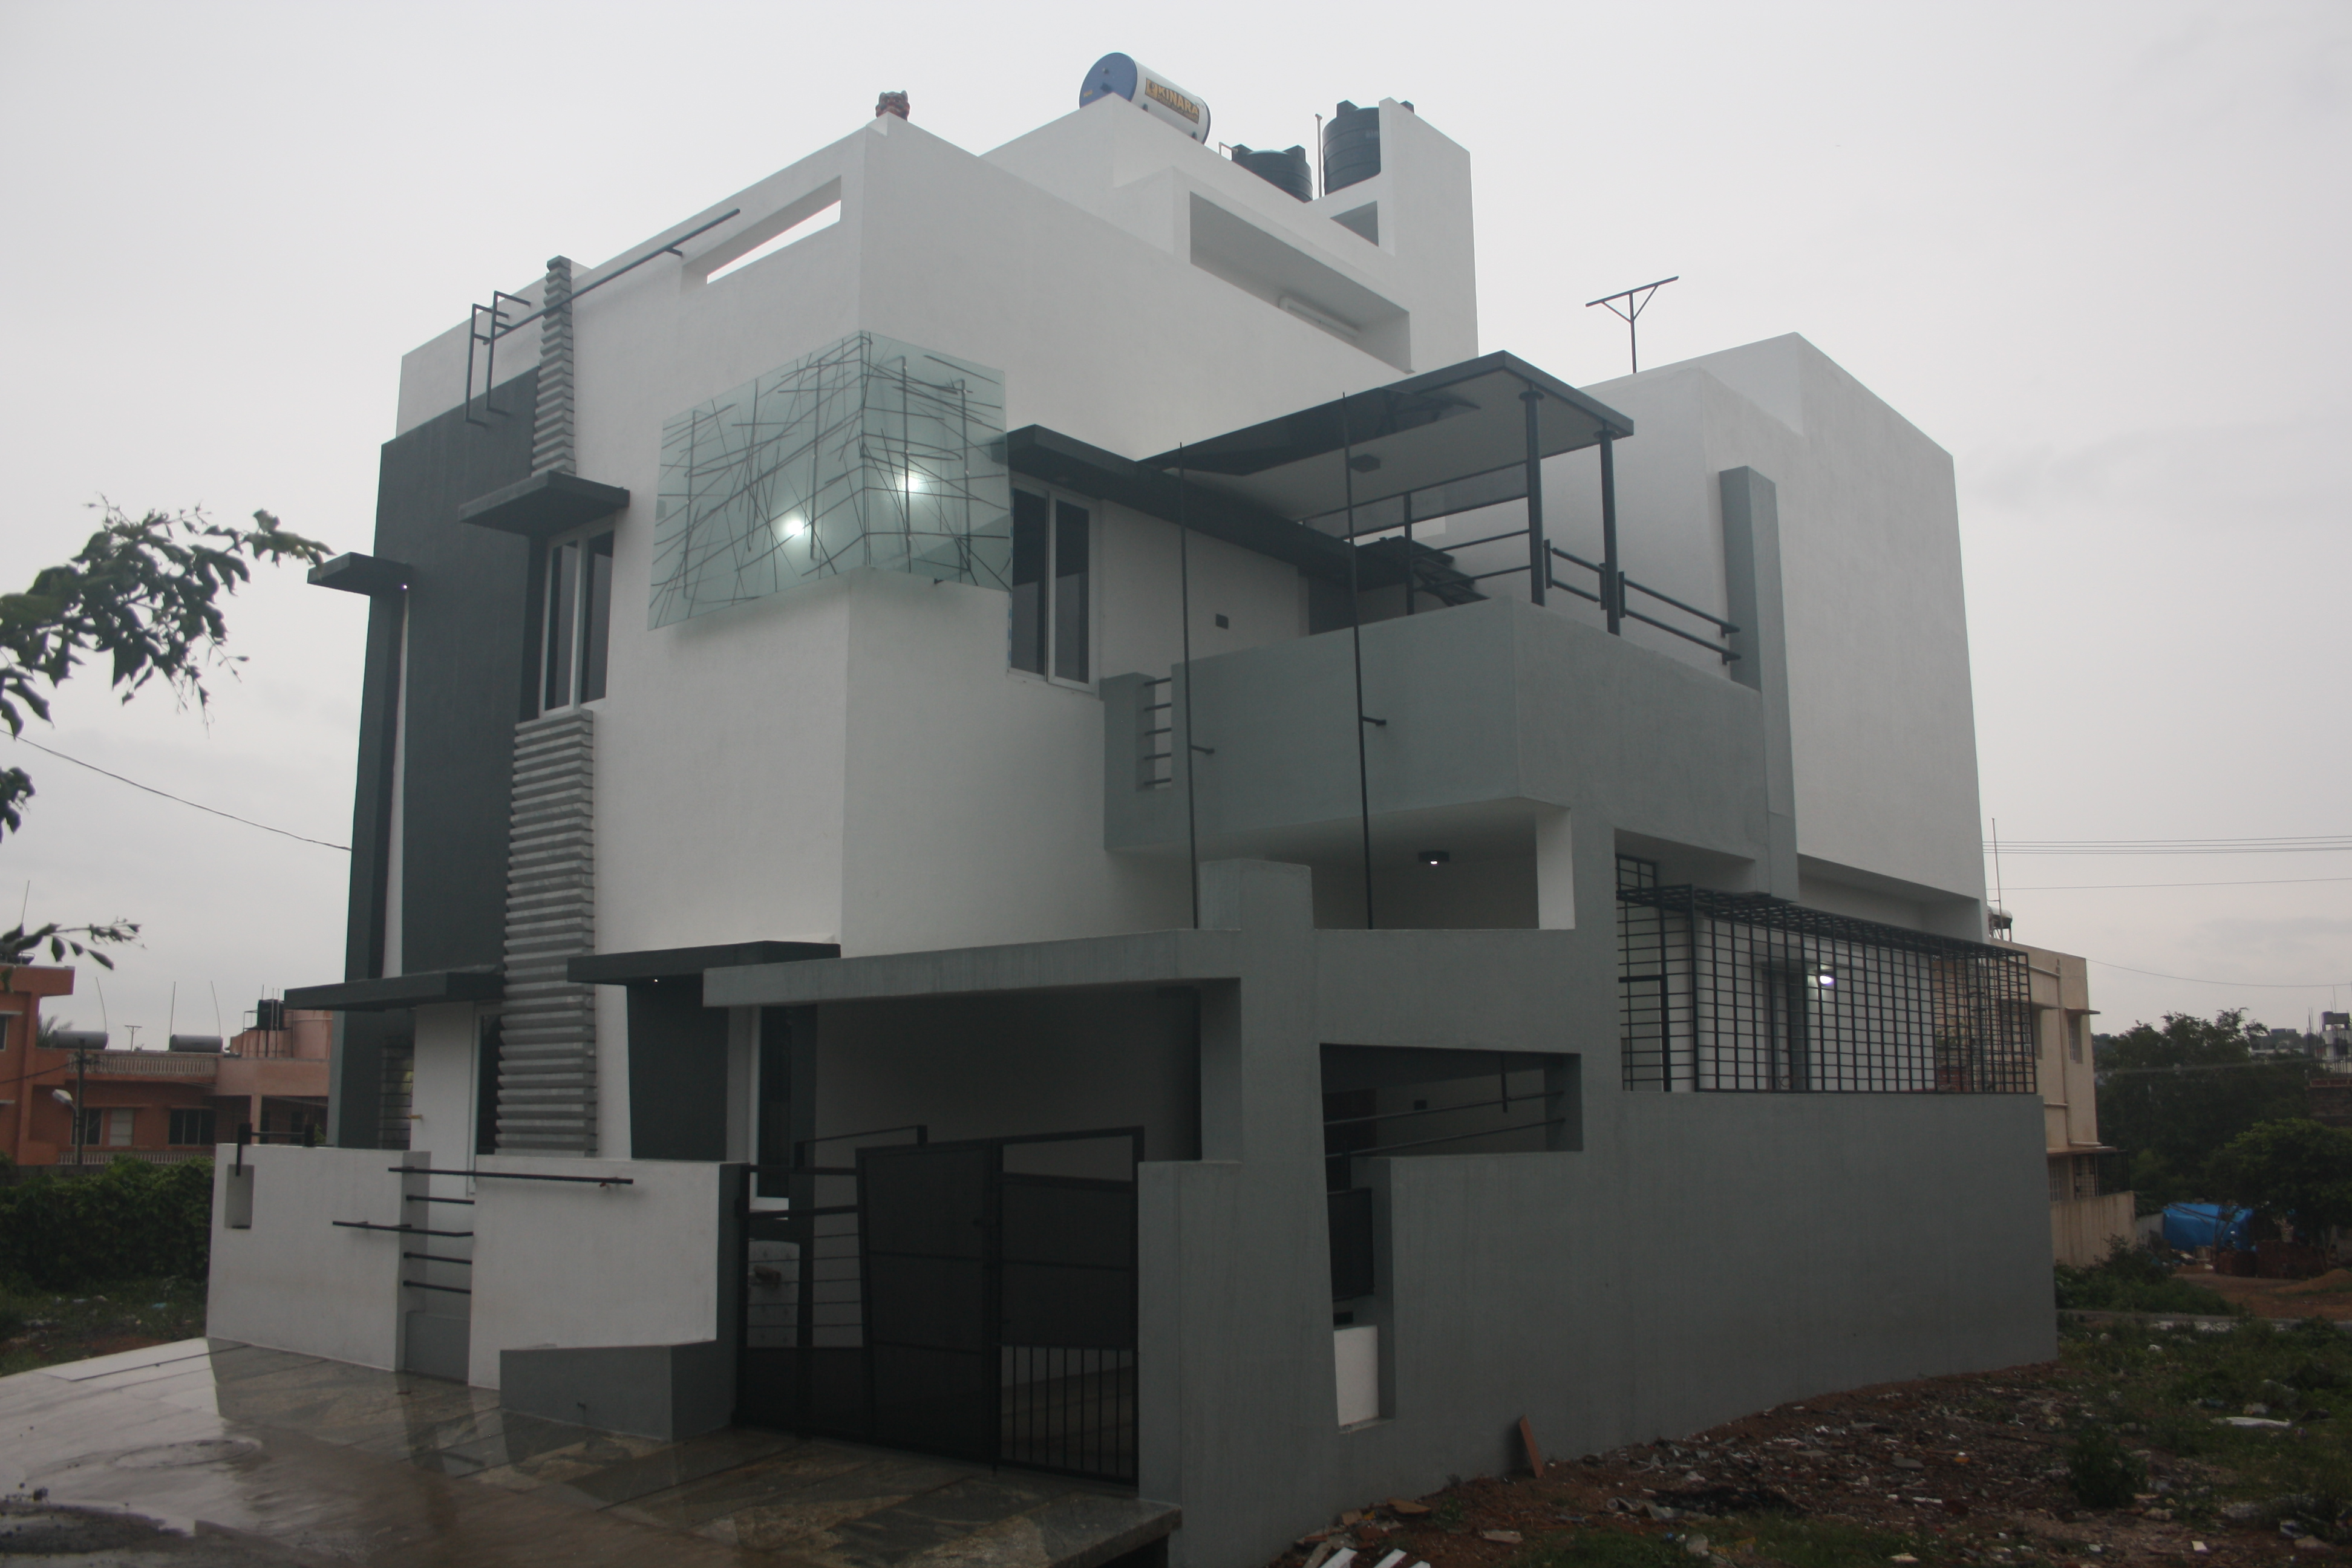 House designs bangalore front elevation by ashwin for Home designs bangalore